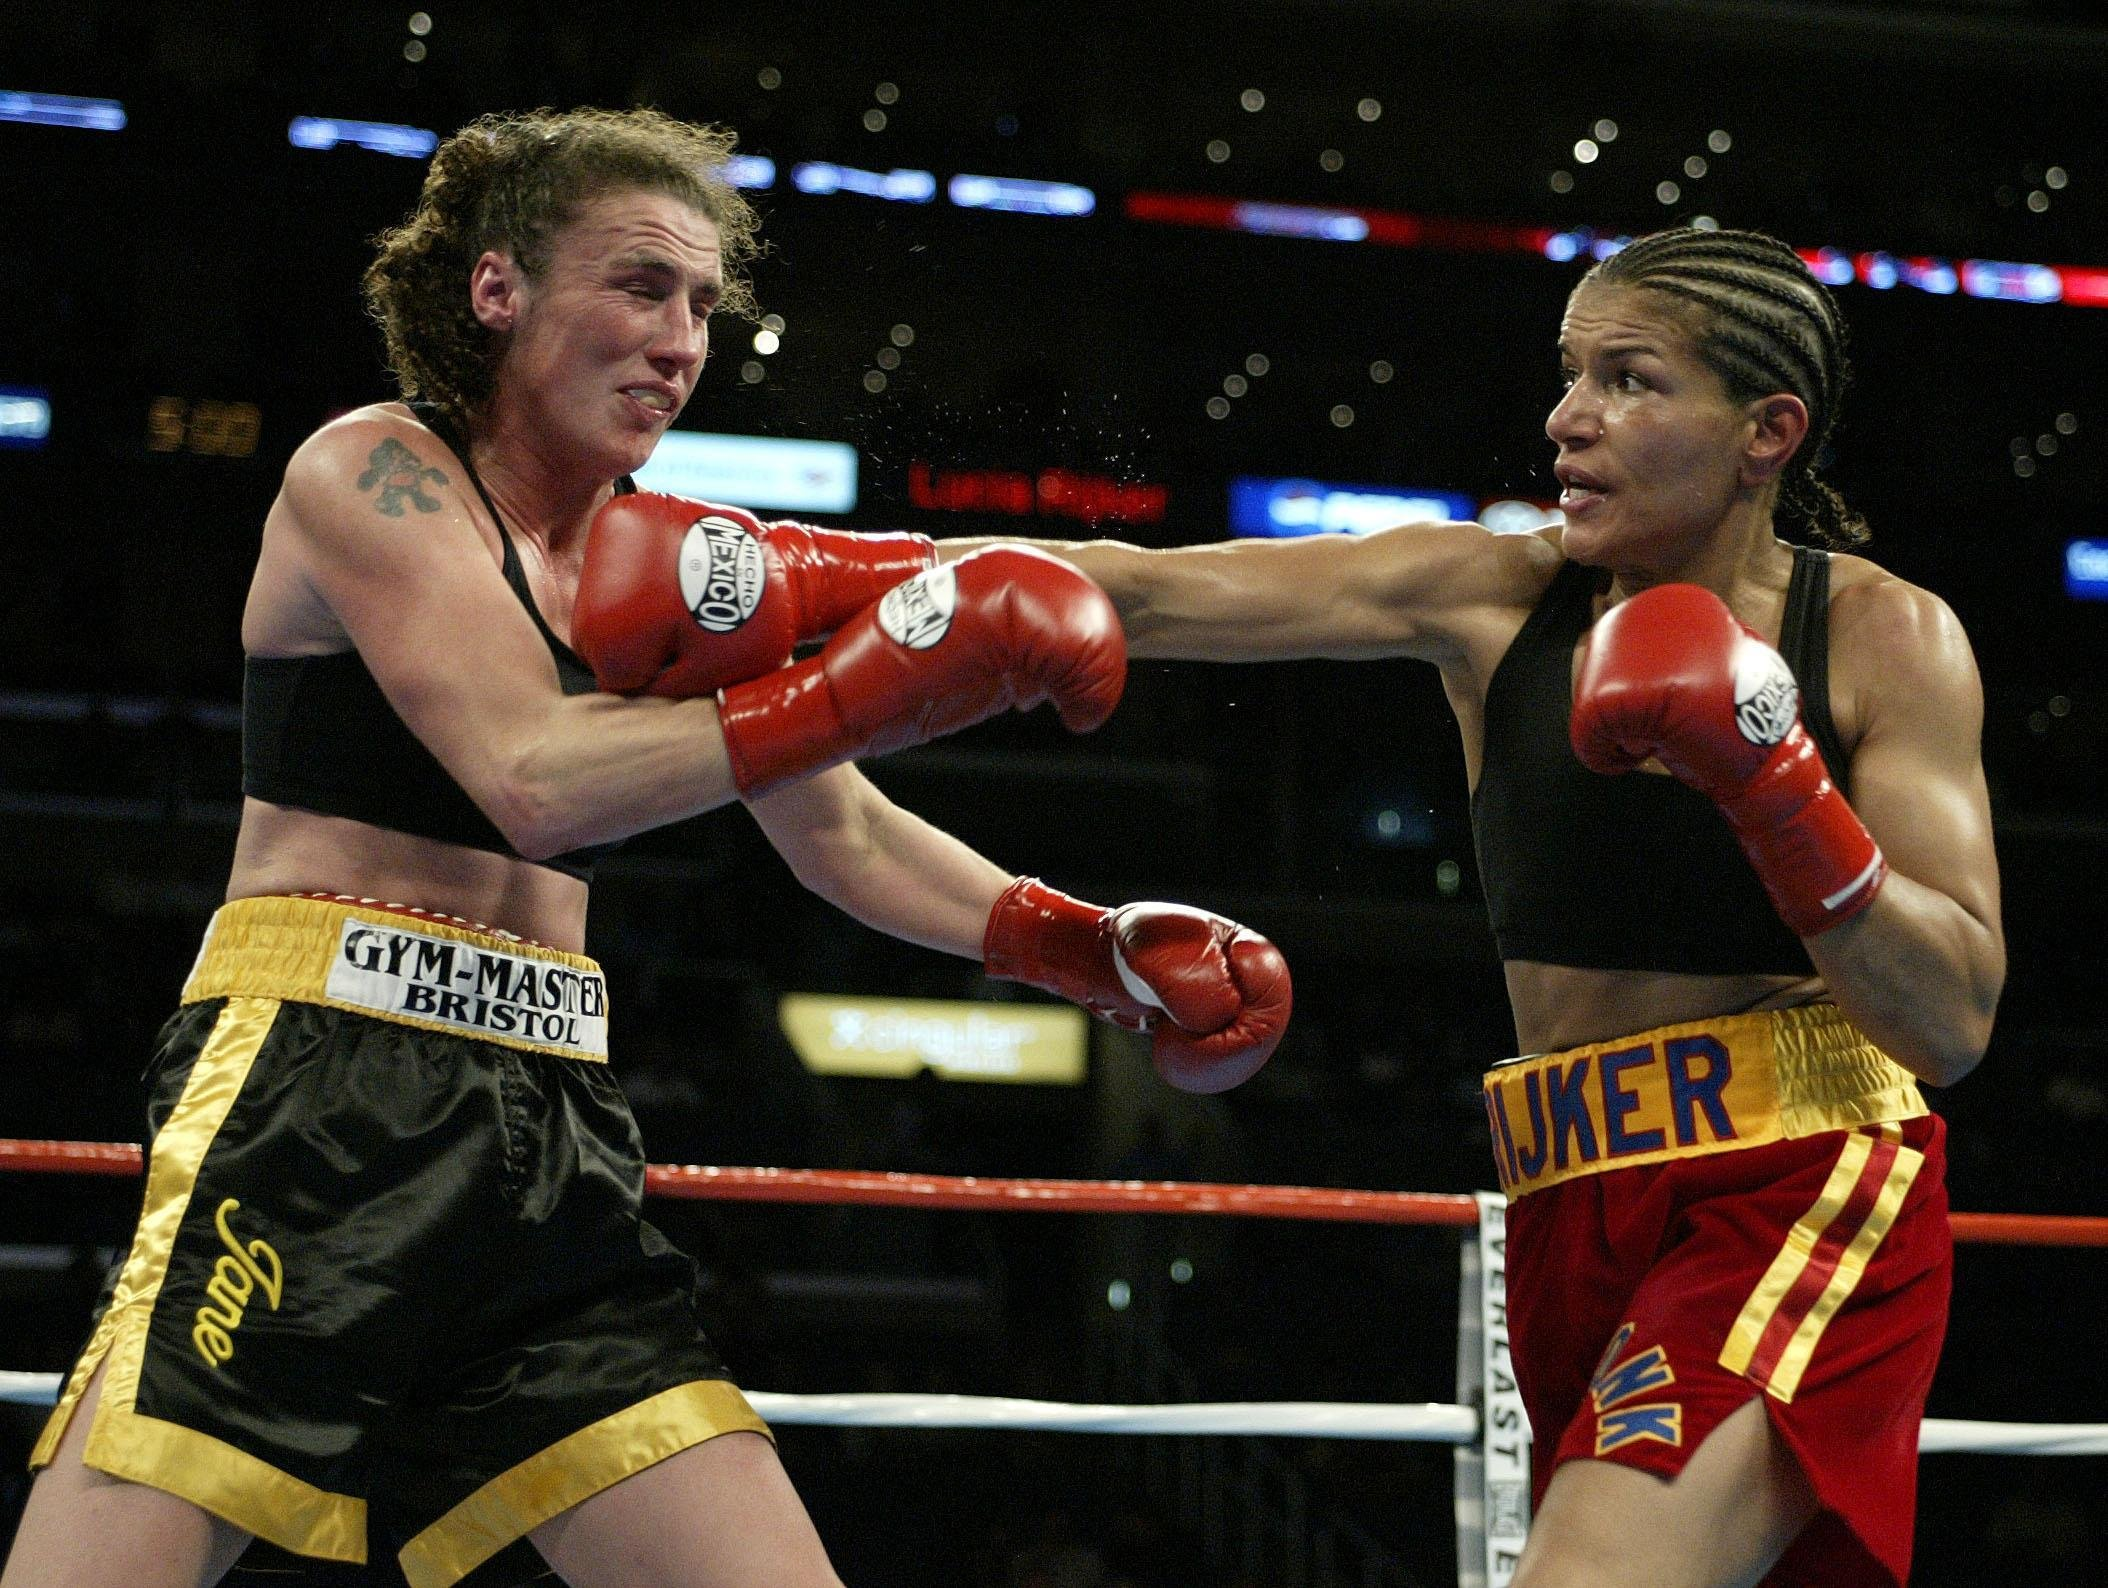 'Most Dangerous Woman in the World' Lucia Rijker leads the way as first women boxers are inducted into Hall of Fame